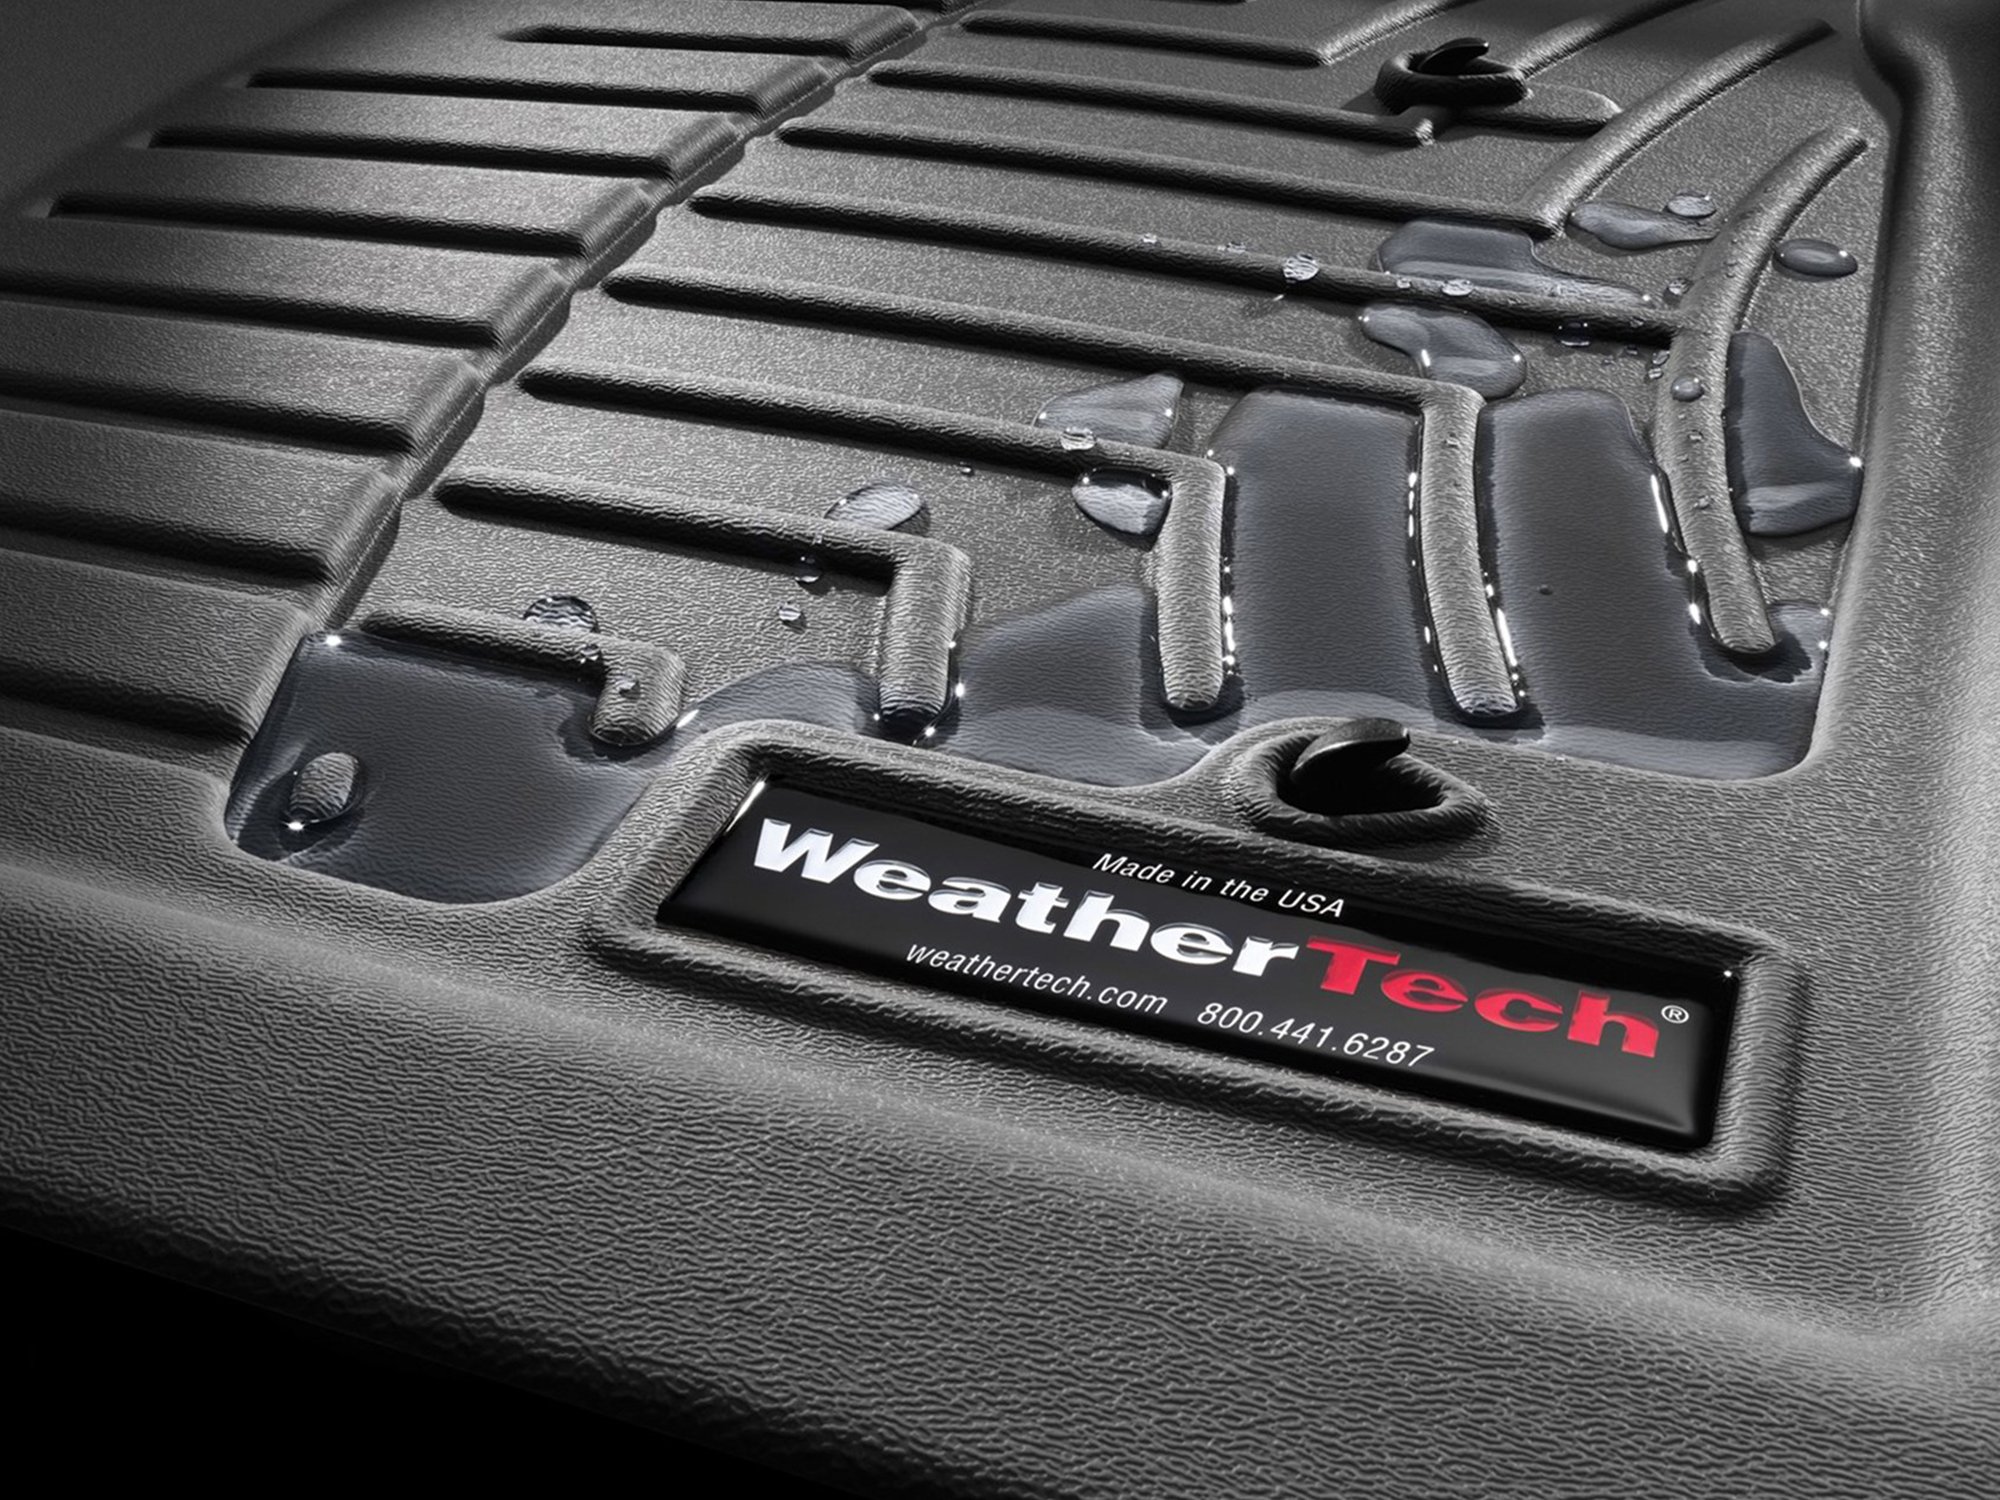 What Are WeatherTech Floor Mats Made of?